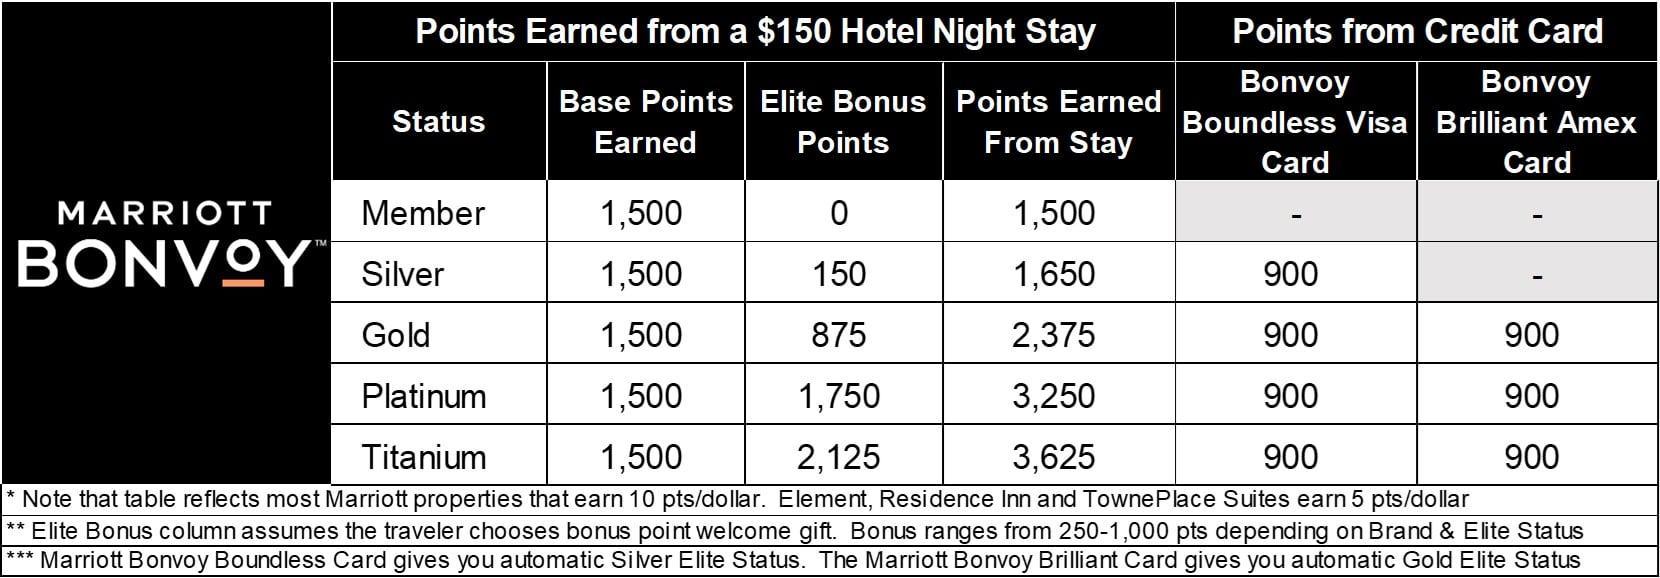 Marriott Bonvoy Points with Credit Card